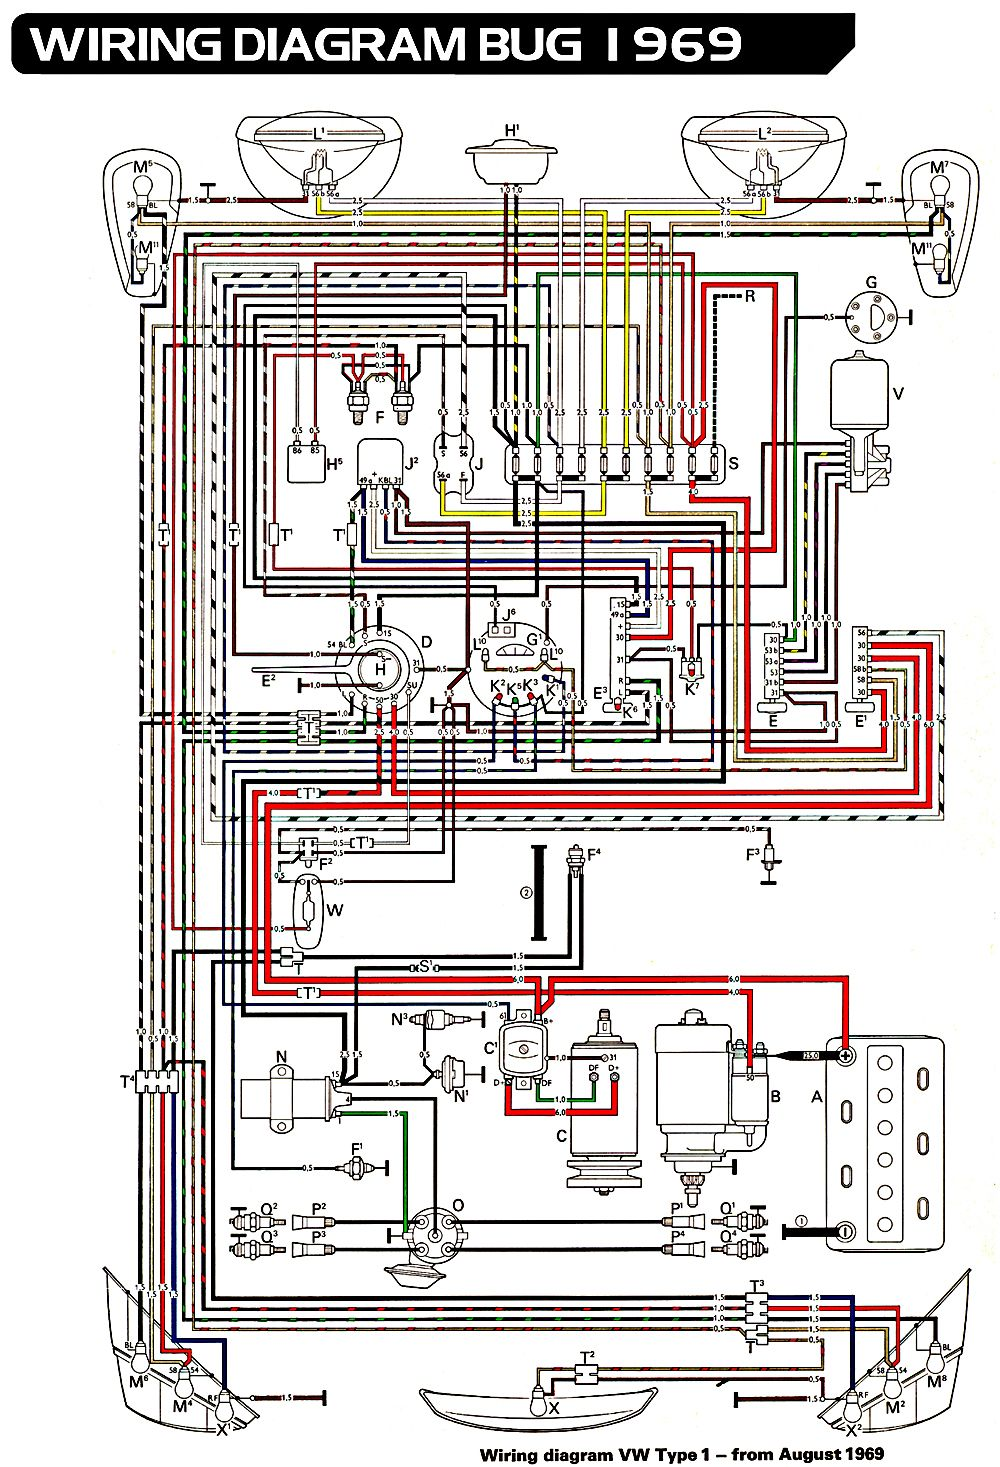 6d75c15875479254f26a32a8499d9044 volkswagen beetle wiring diagram 1966 vw beetle wiring vw bug wiring diagram at webbmarketing.co